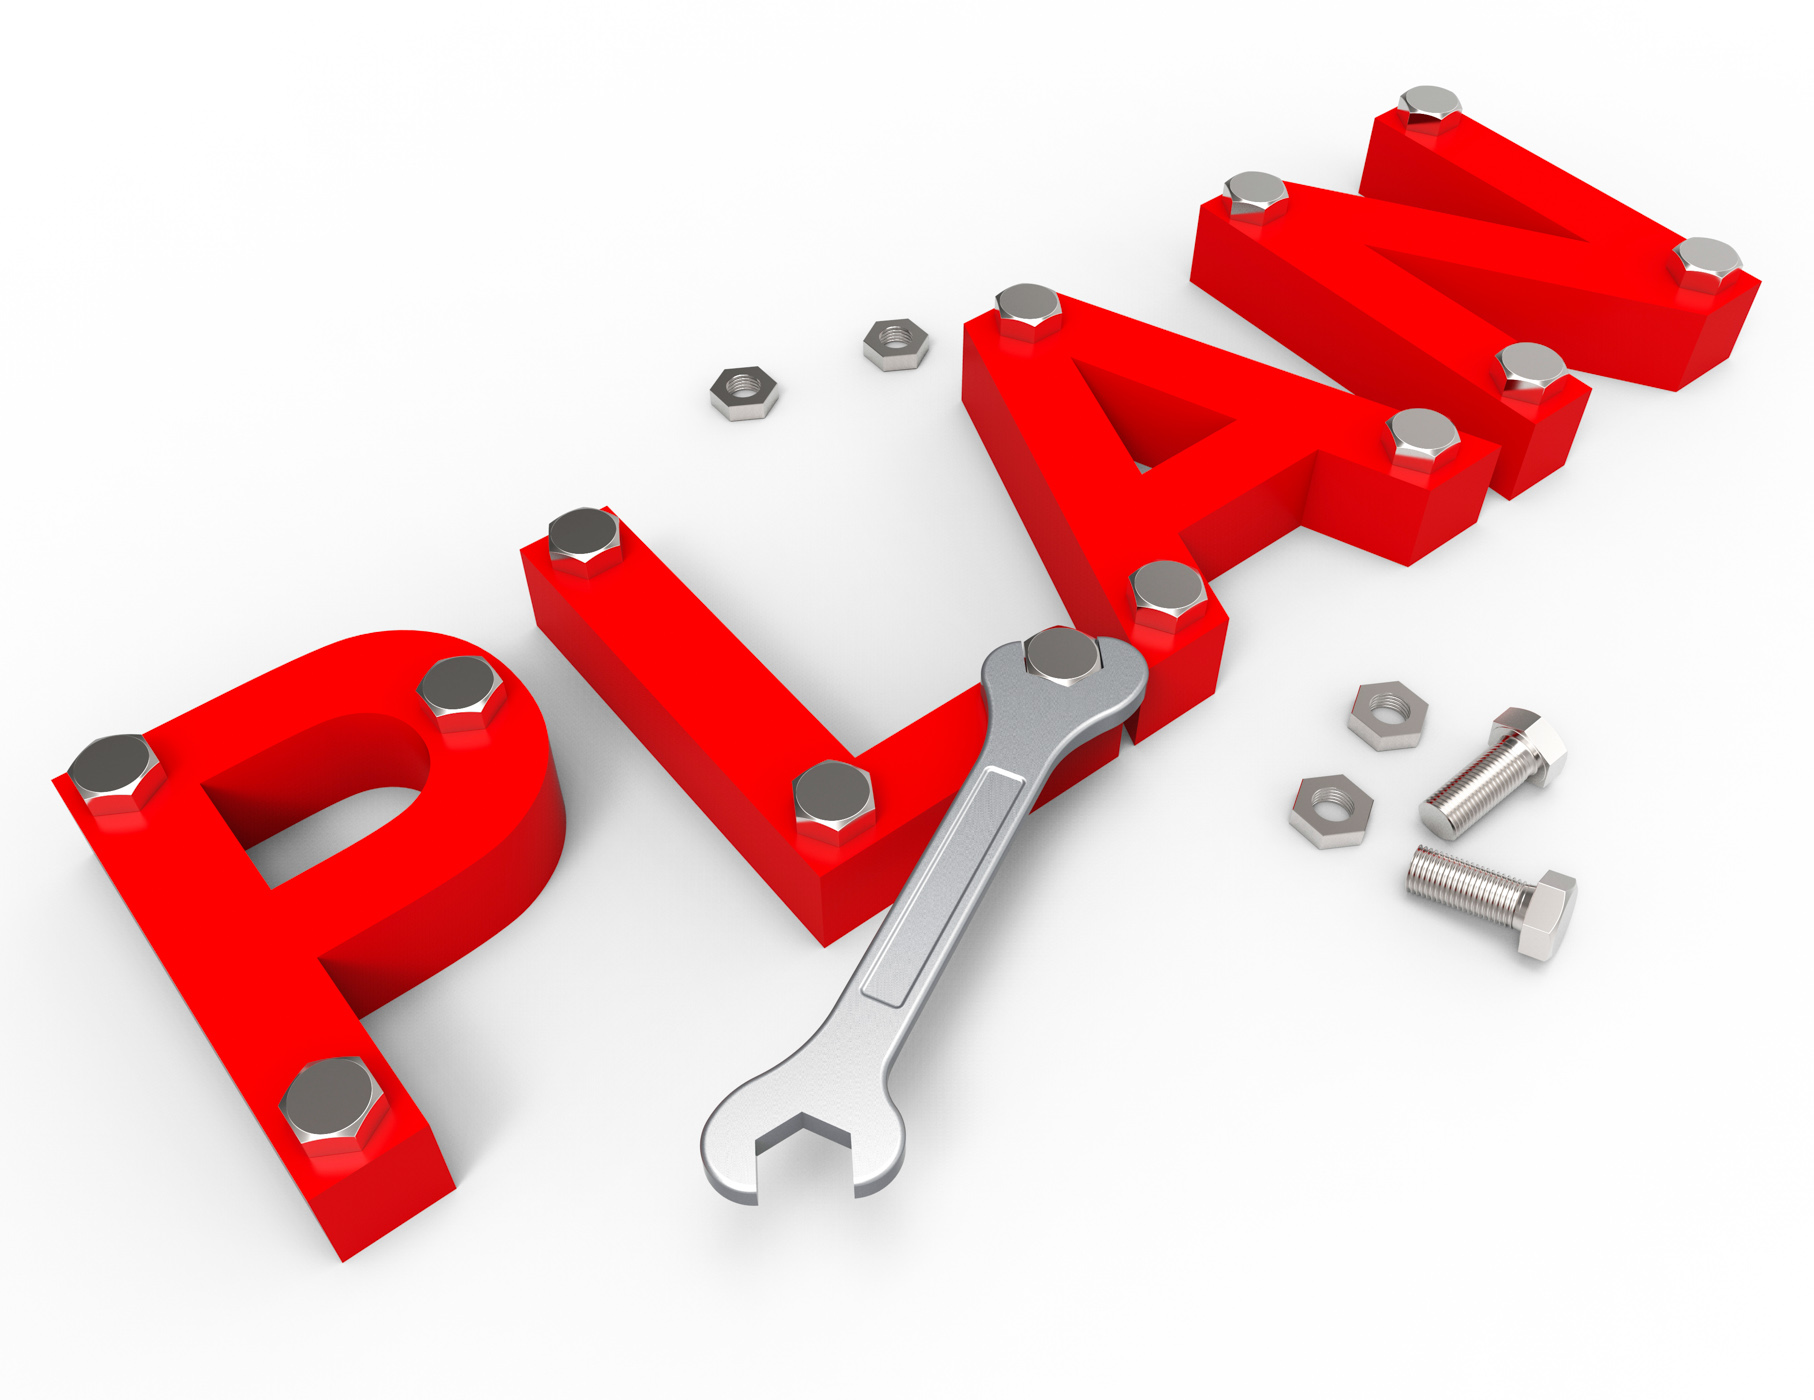 Make A Plan Shows Project Management And Enterprise, Activity, Projects, Tasks, Task, HQ Photo